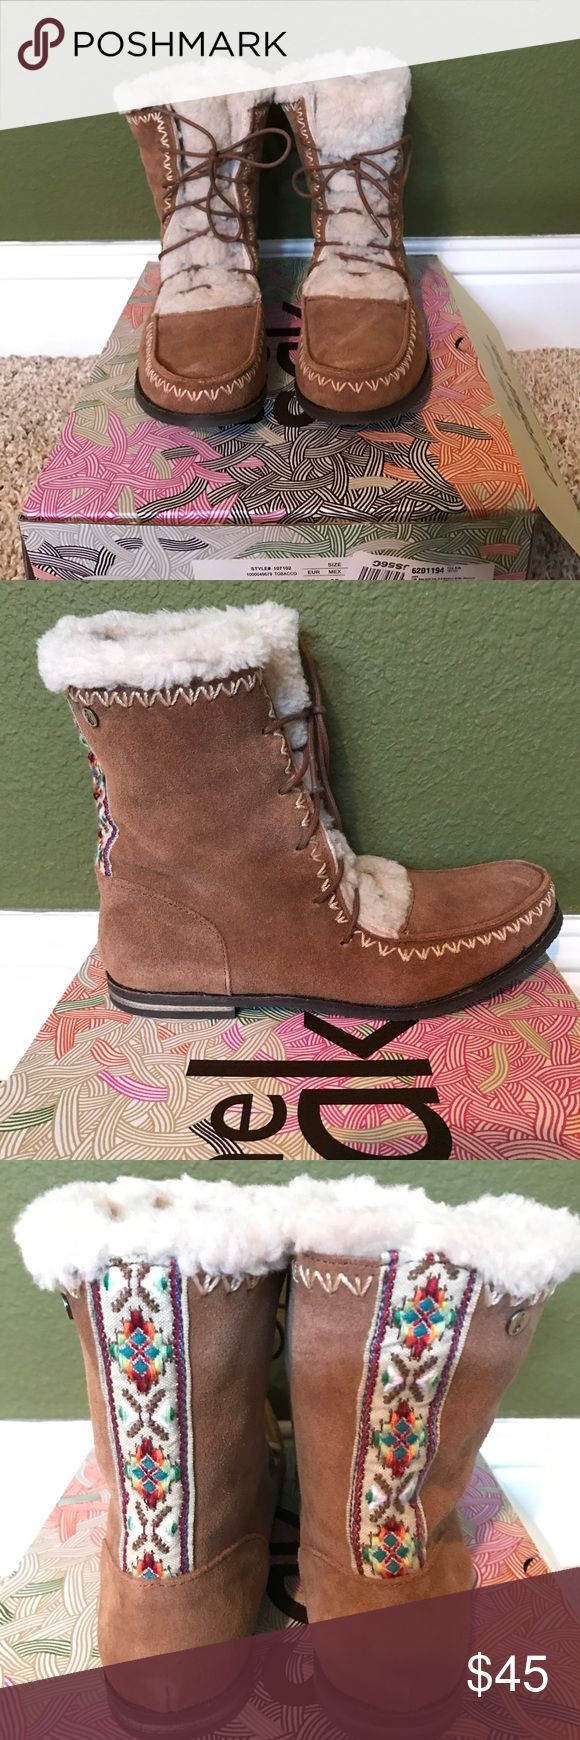 The Sak NWT Adorable Boots - Size 8 1-2 The Sak NWT Adorable Boots - Size 8 1/2. These unfortunately did not fit me. I'm more of a 9.  These are brand new except where I tried them on to see if they fit. Color is called Tobacco (Tan). The inside is SO cozy w/synthetic lambs wool, rest of boot is leather. Tie ups with a super cute Scandinavian style ribbons down the back of the boots. Let me know if you have any questions. All my items come from a smoke free home. The Sak Shoes Lace Up Boots